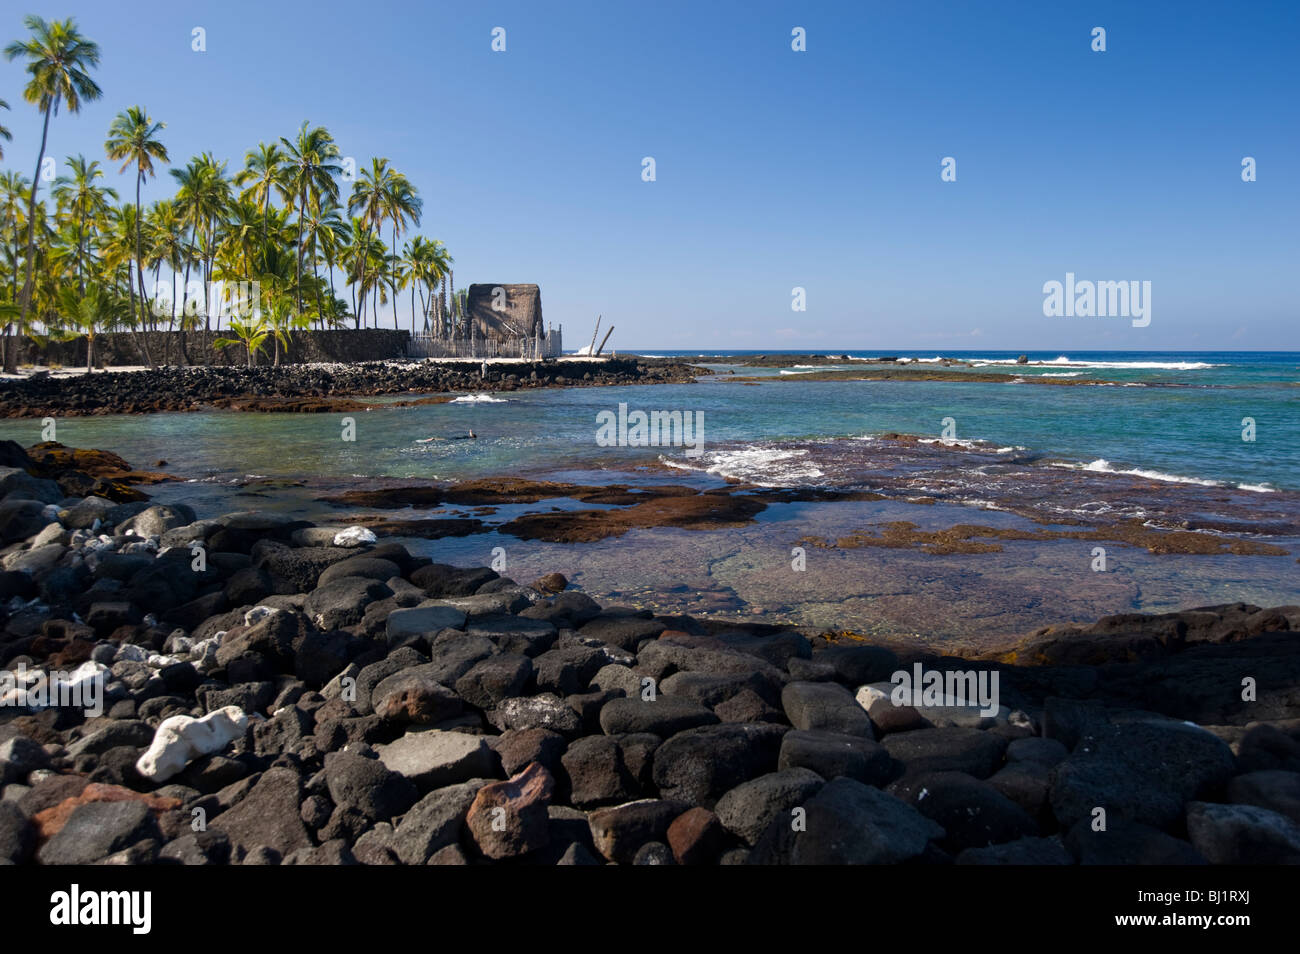 Place Of Refuge Hawaii - Stock Image